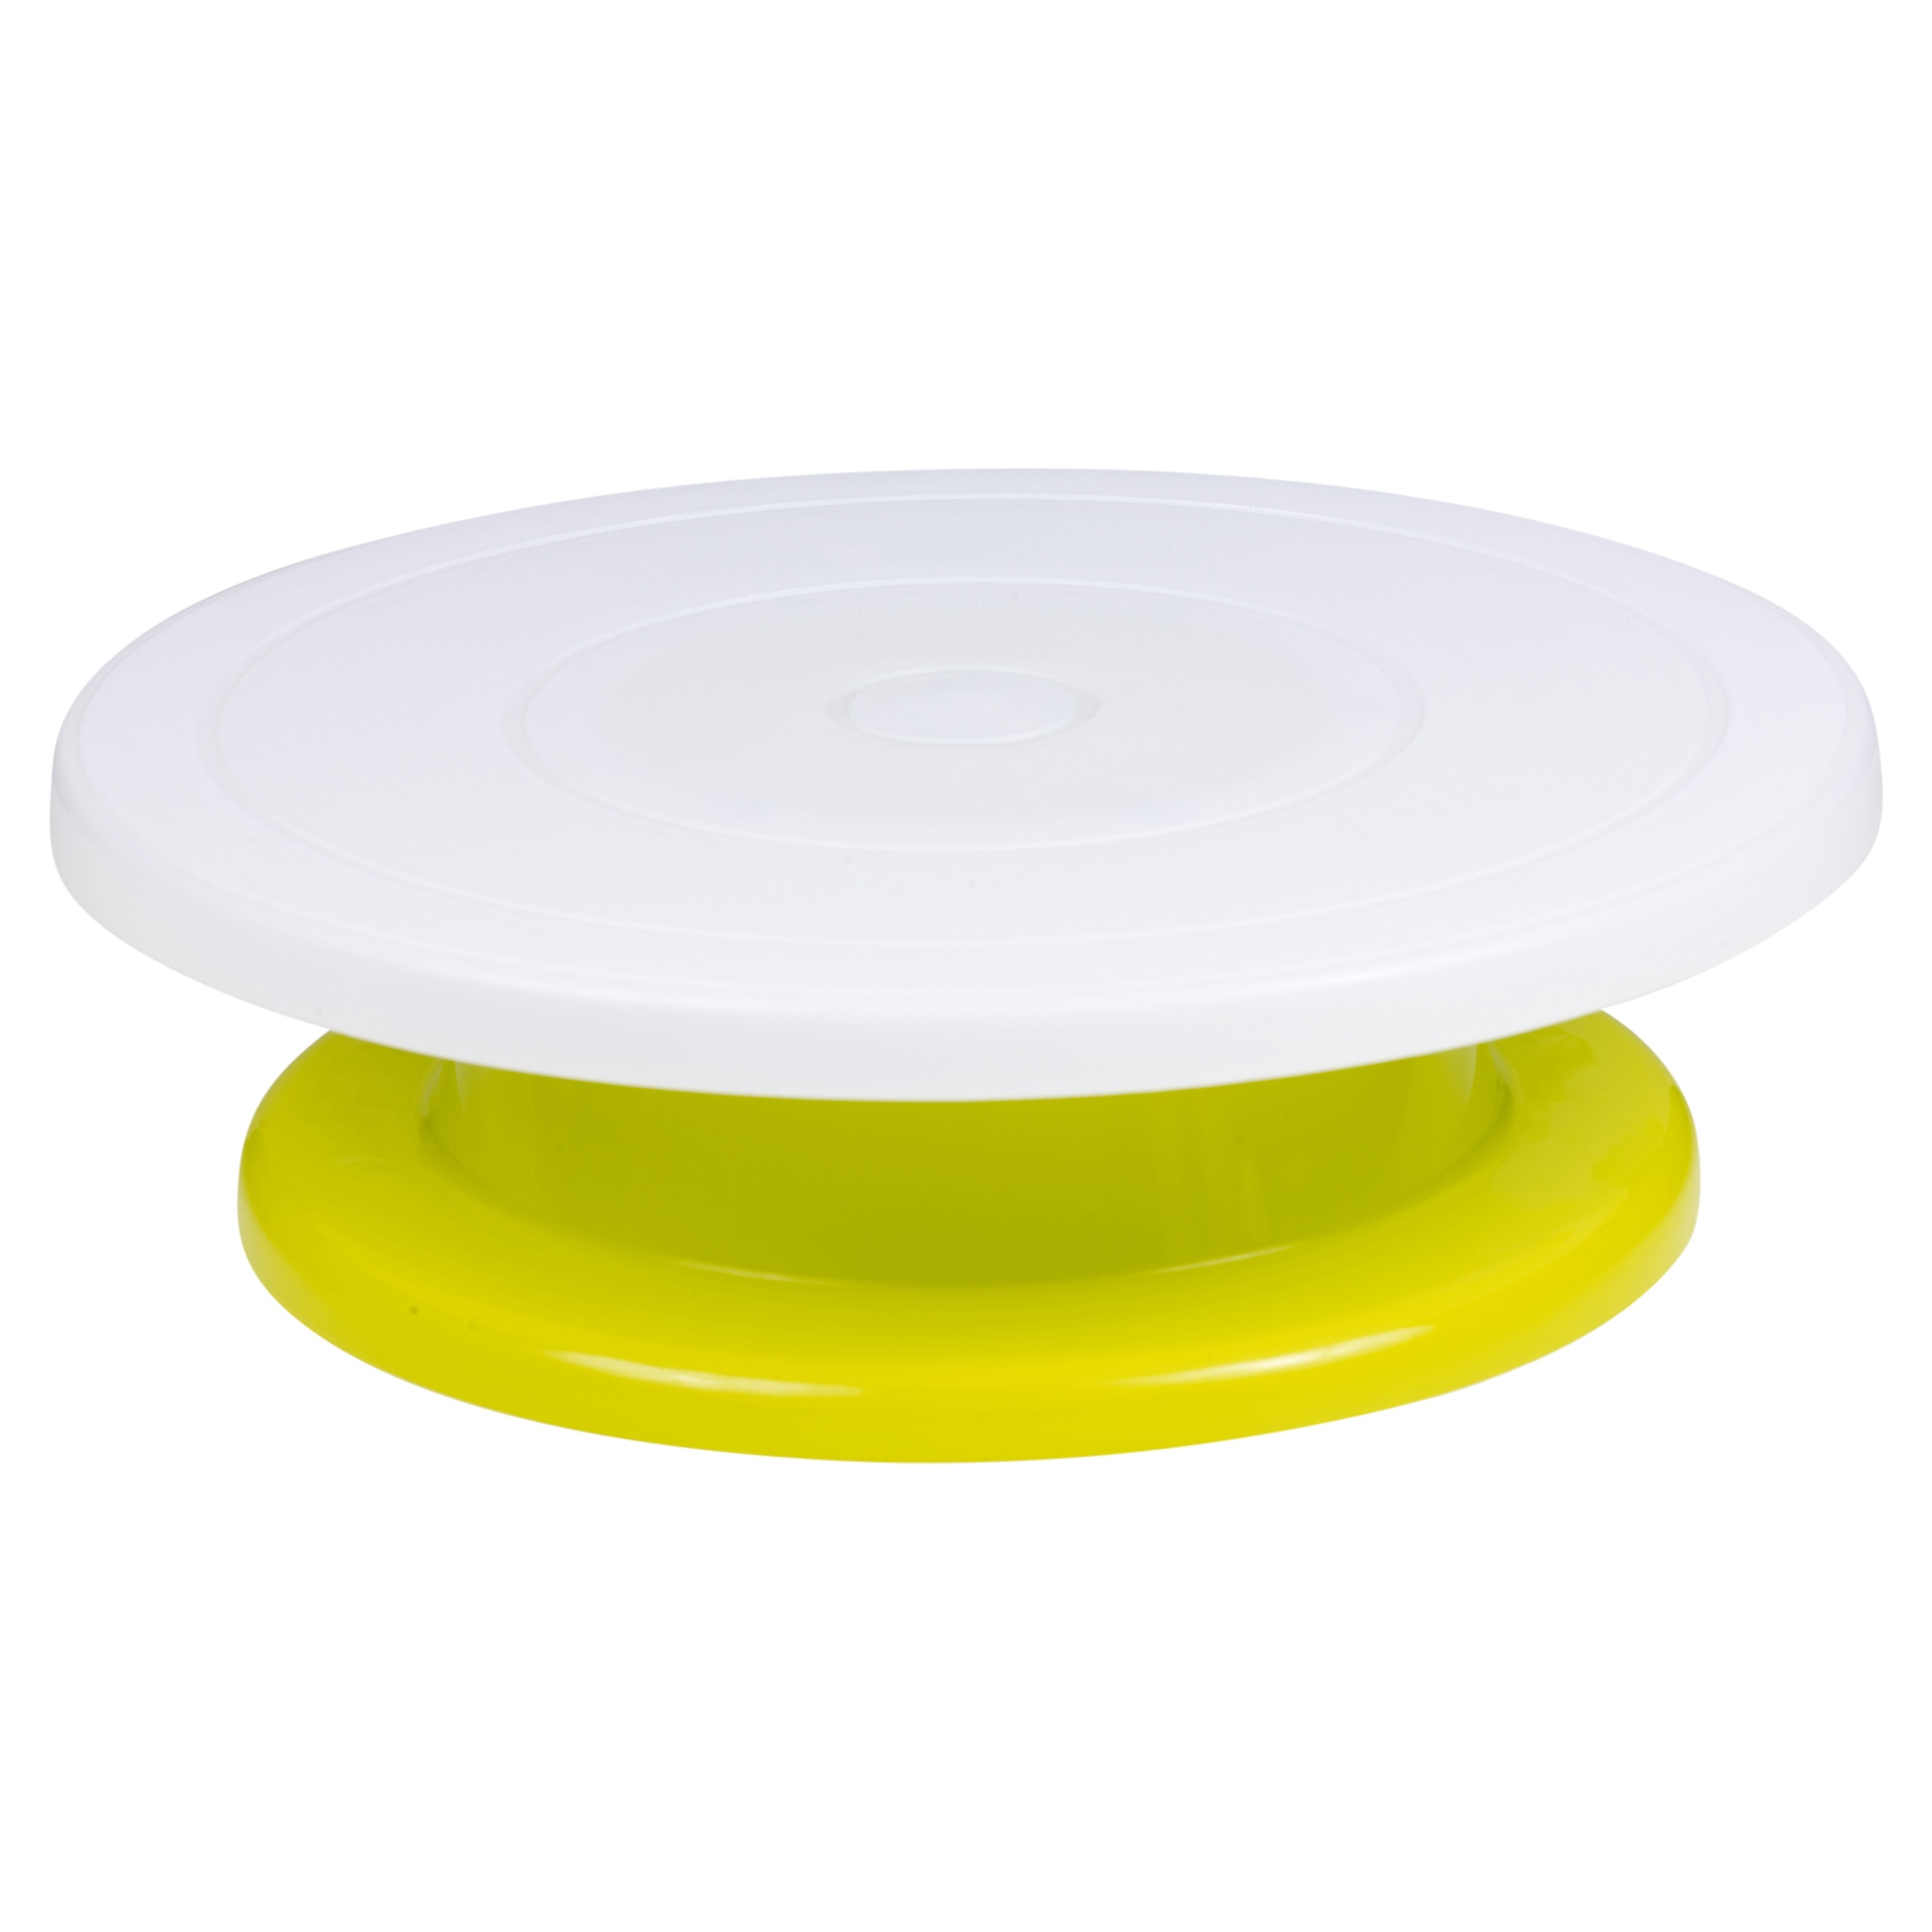 How To Use A Cake Stand On Dining Room Table